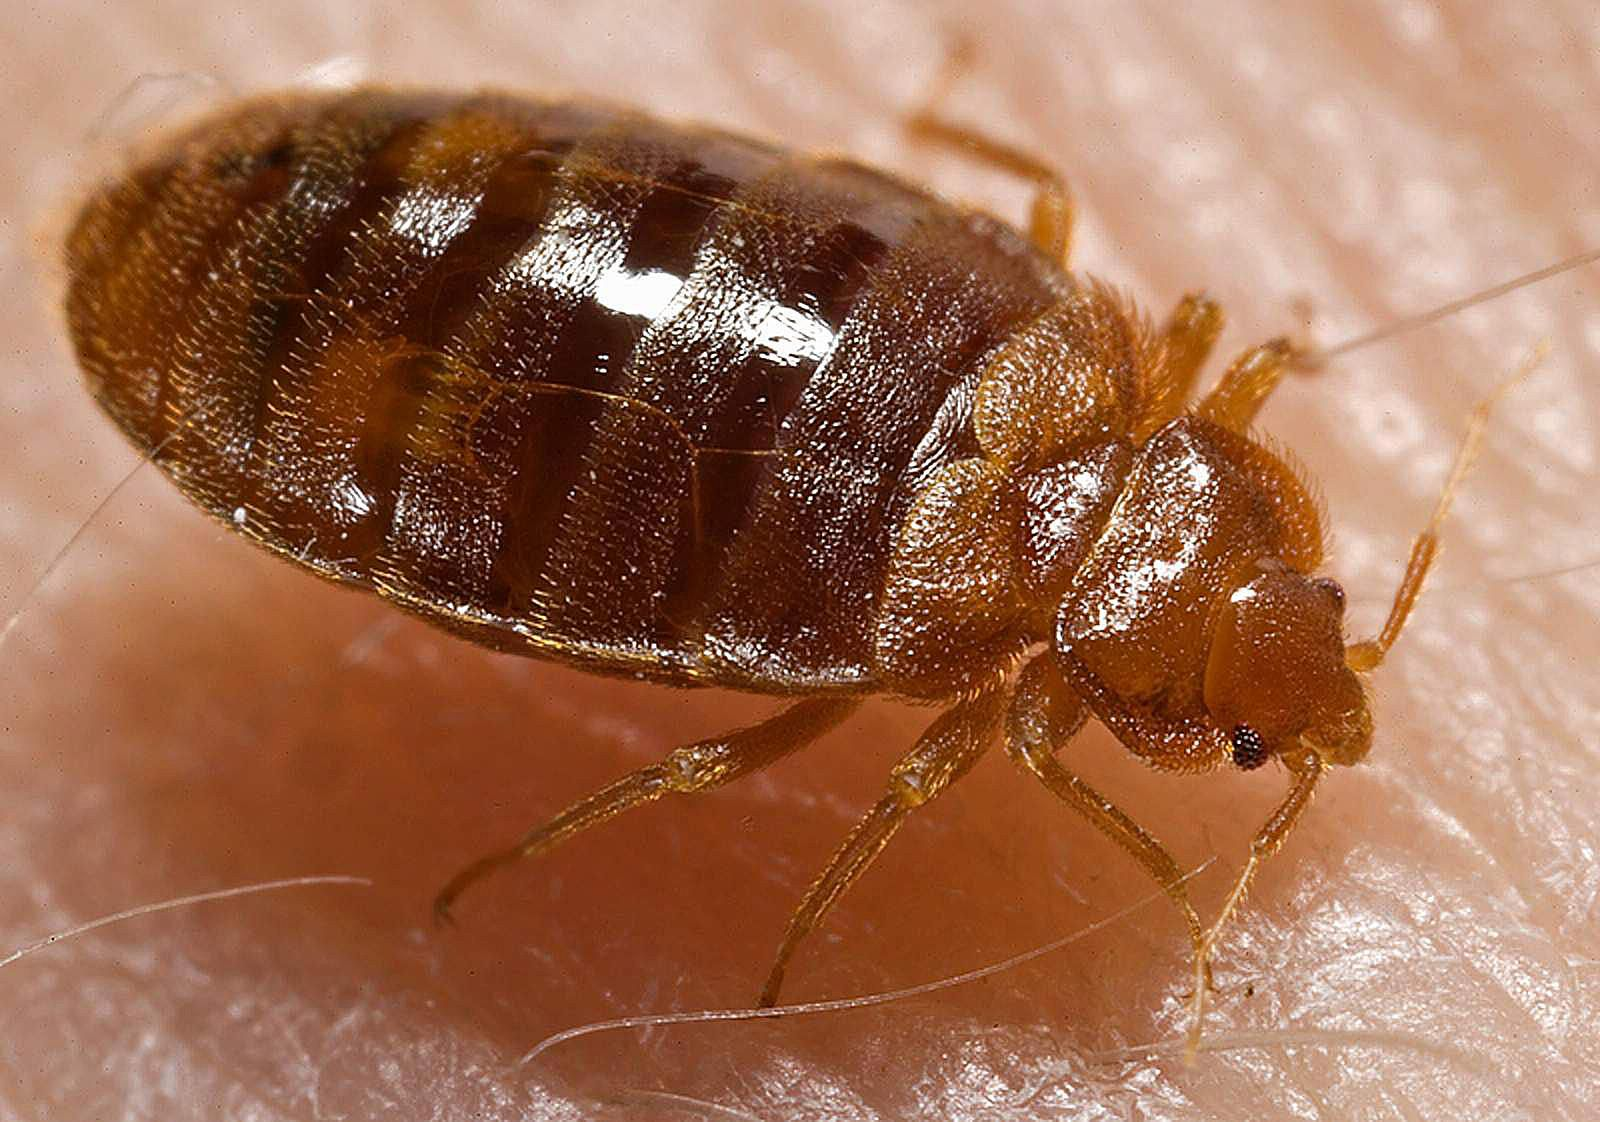 does your state have a bedbug law